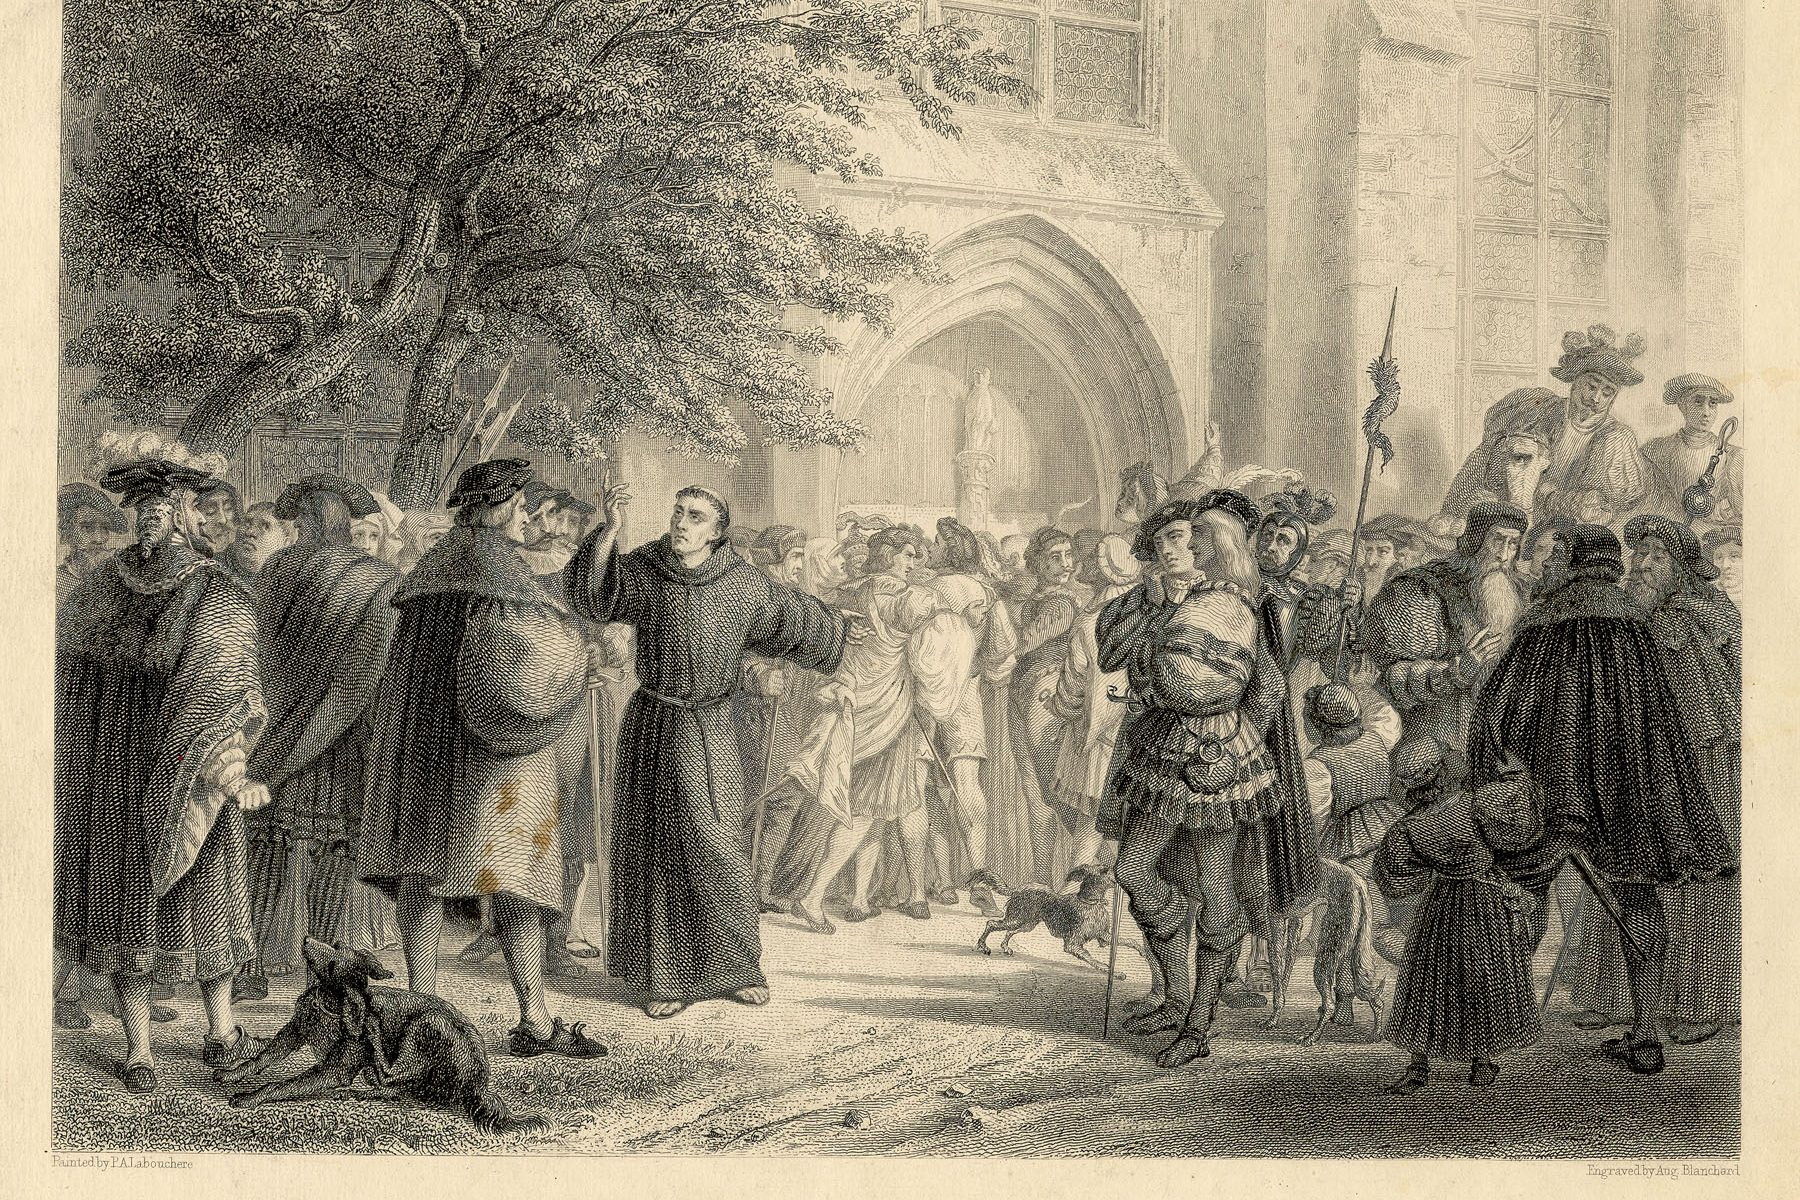 Engraving of the scene at Wittenberg after Luther nailed his 95 Theses to the door.